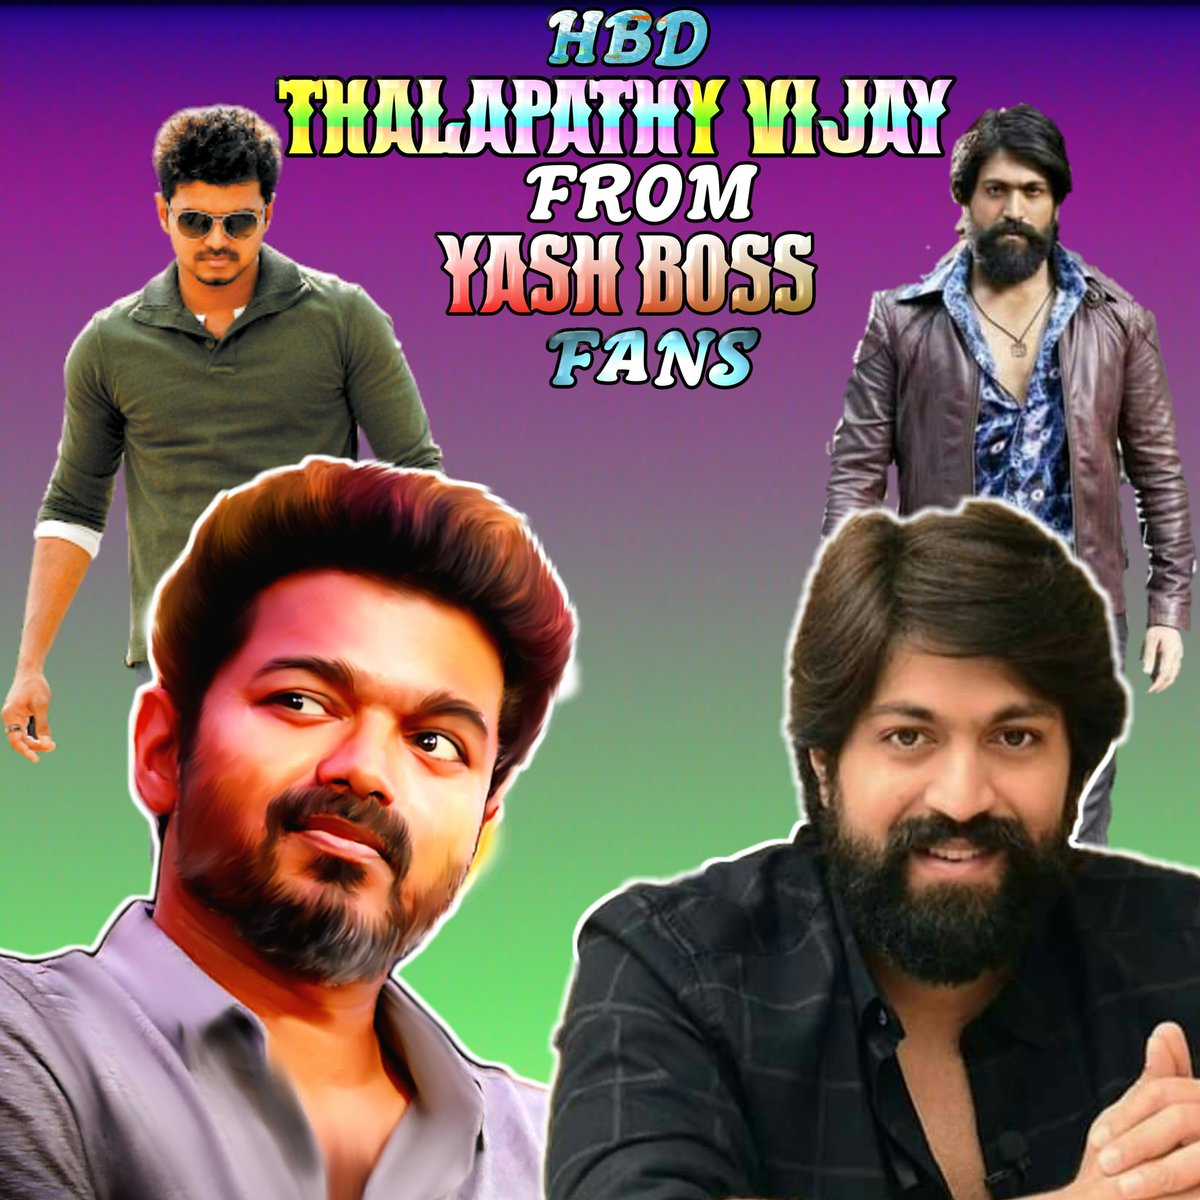 Thank you vijay sir and his fans for your support to #KGFChapter1 All the best to #Bigil #HBDVijayFromYashBossFans  #HBDEminentVijay